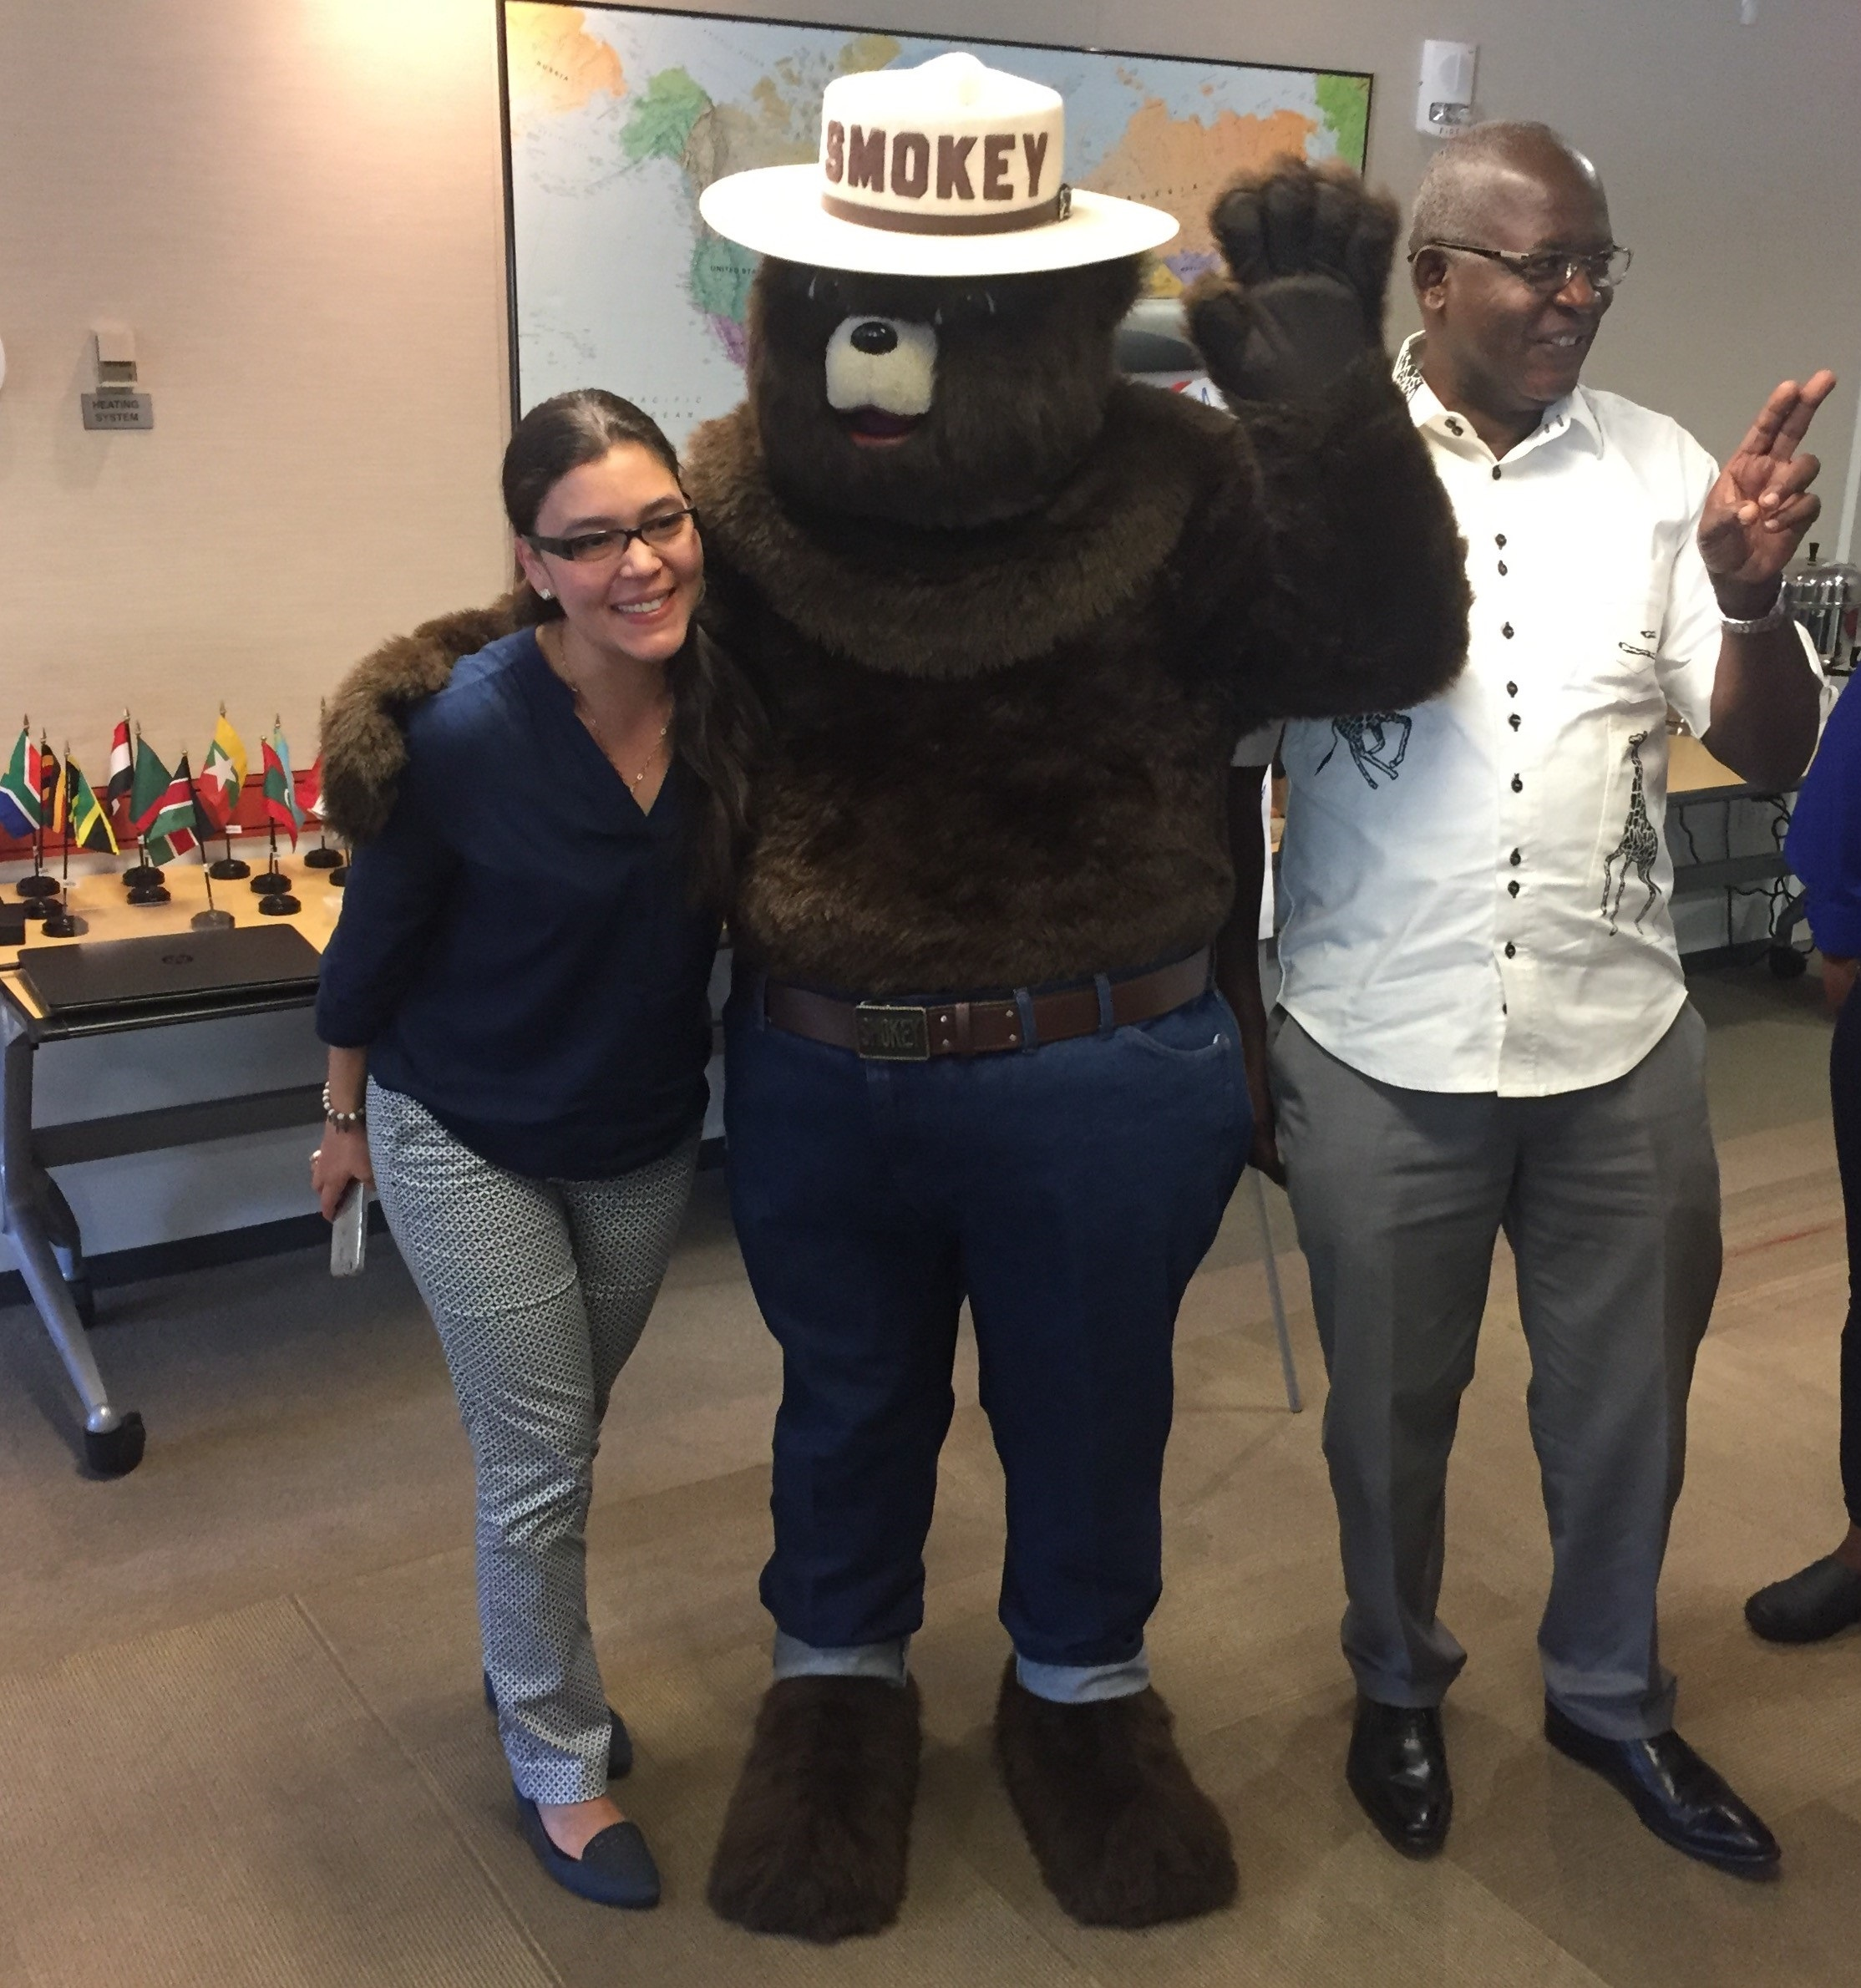 A woman from Colombia and a man from Congo pose next to Smokey Bear at the International Programs Office